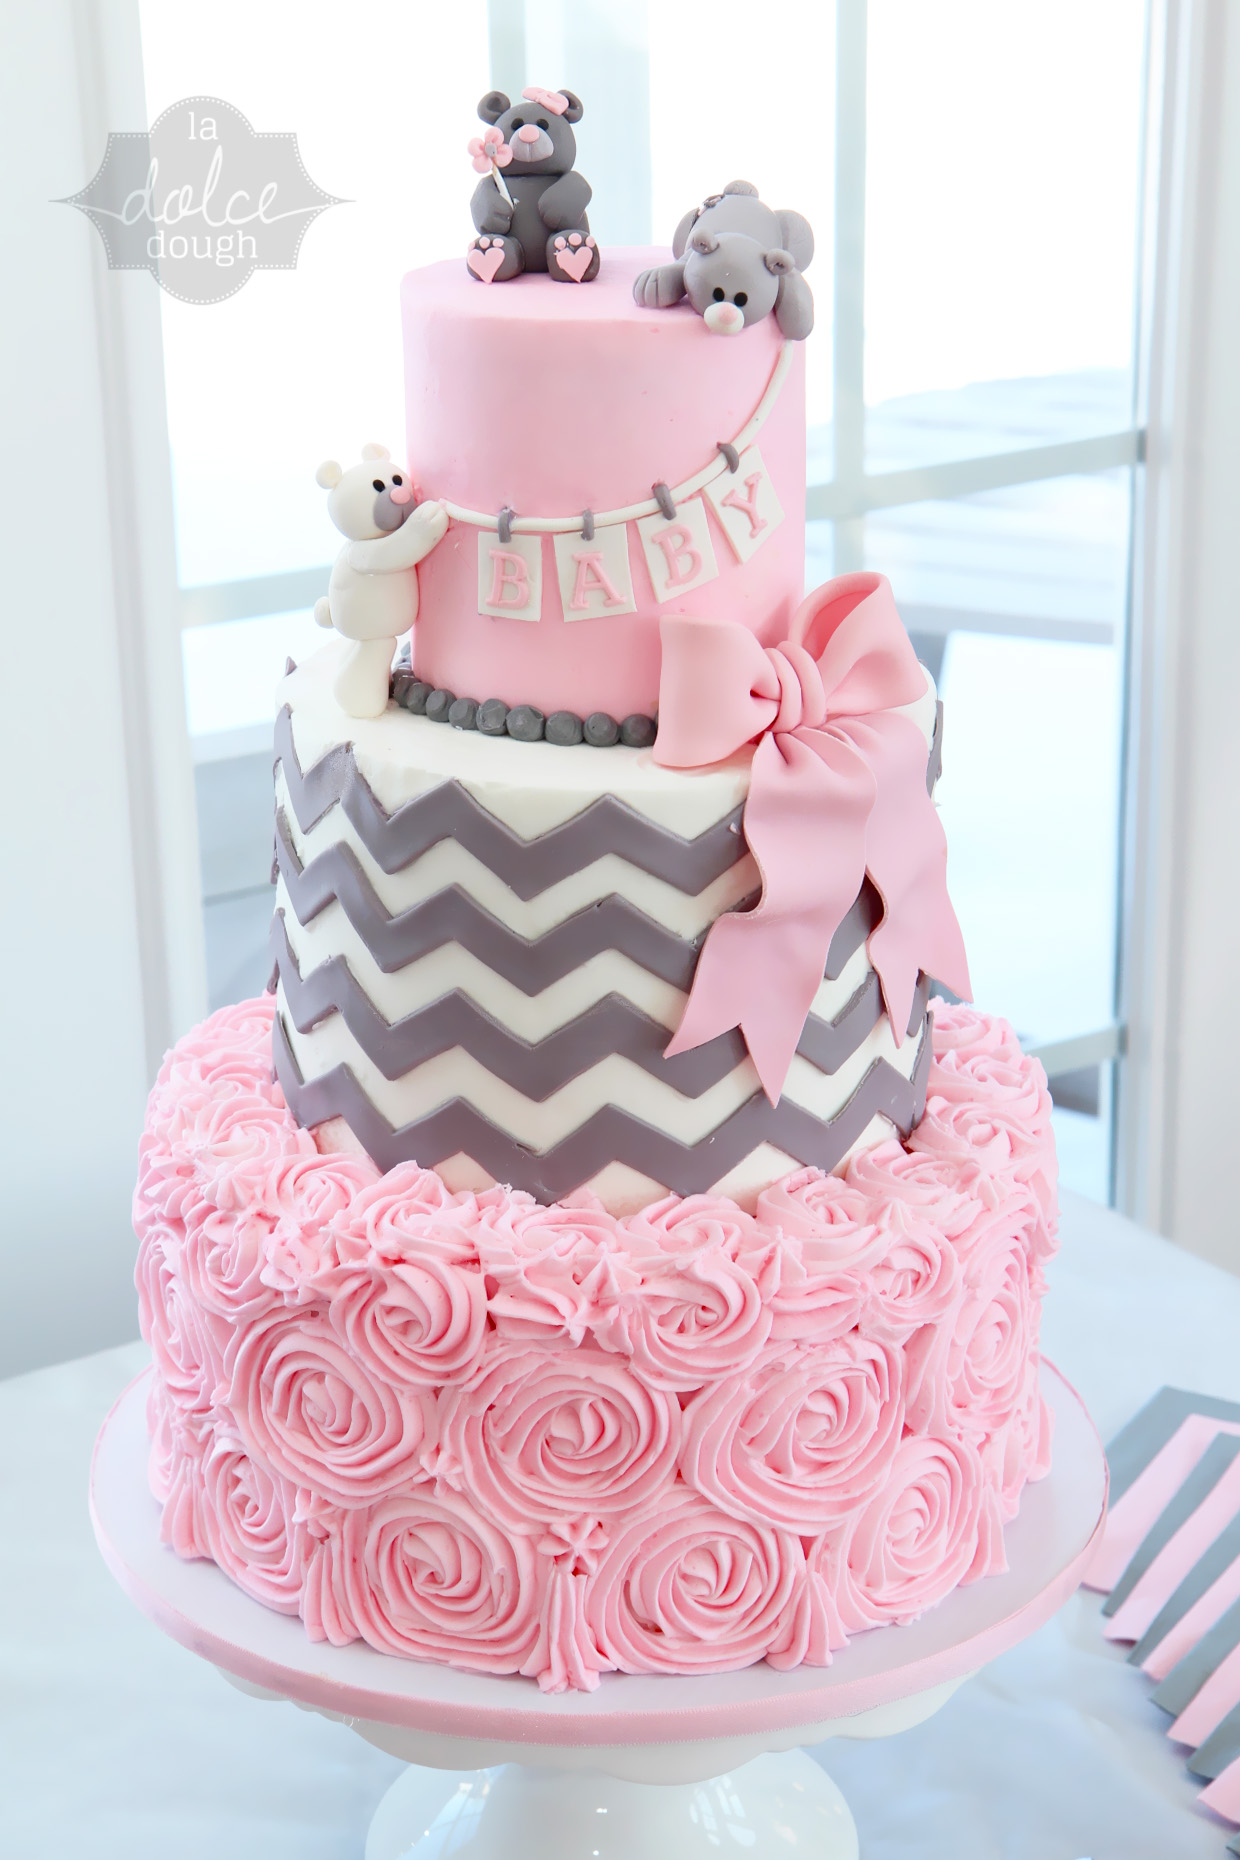 Girl baby shower cakes be equipped baby shower cake ideas be equipped baby shower cake decorations